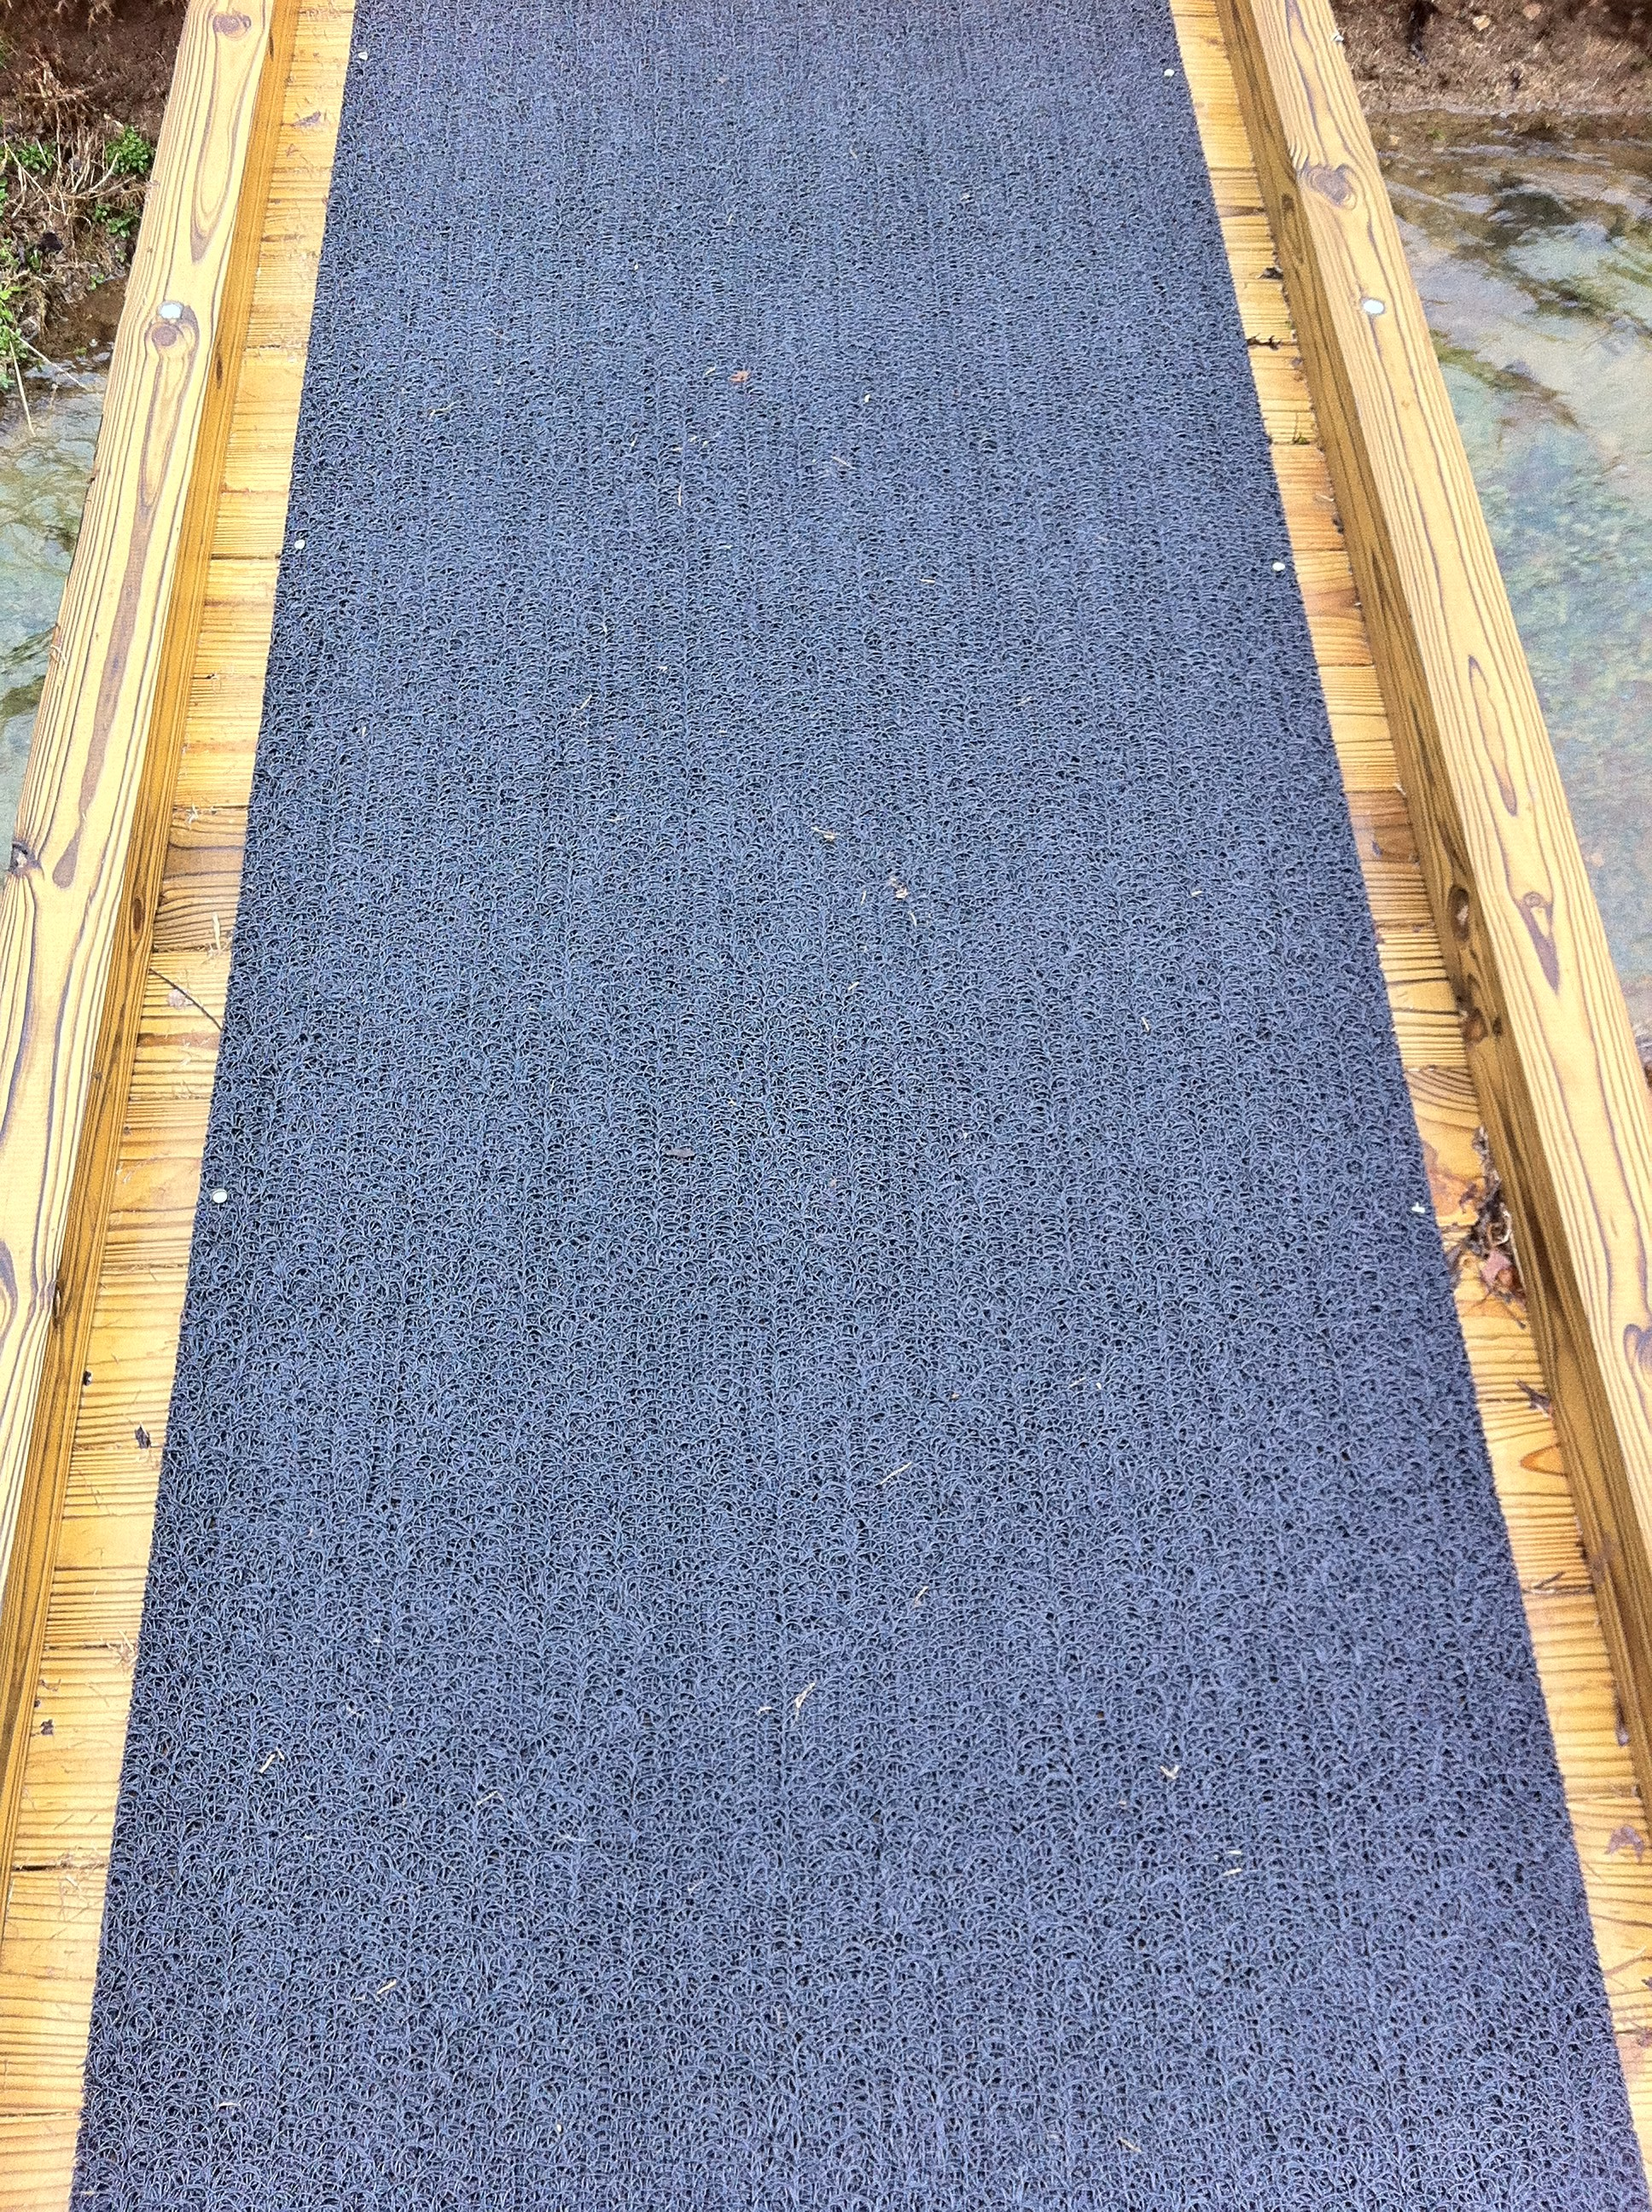 Bridge Matting